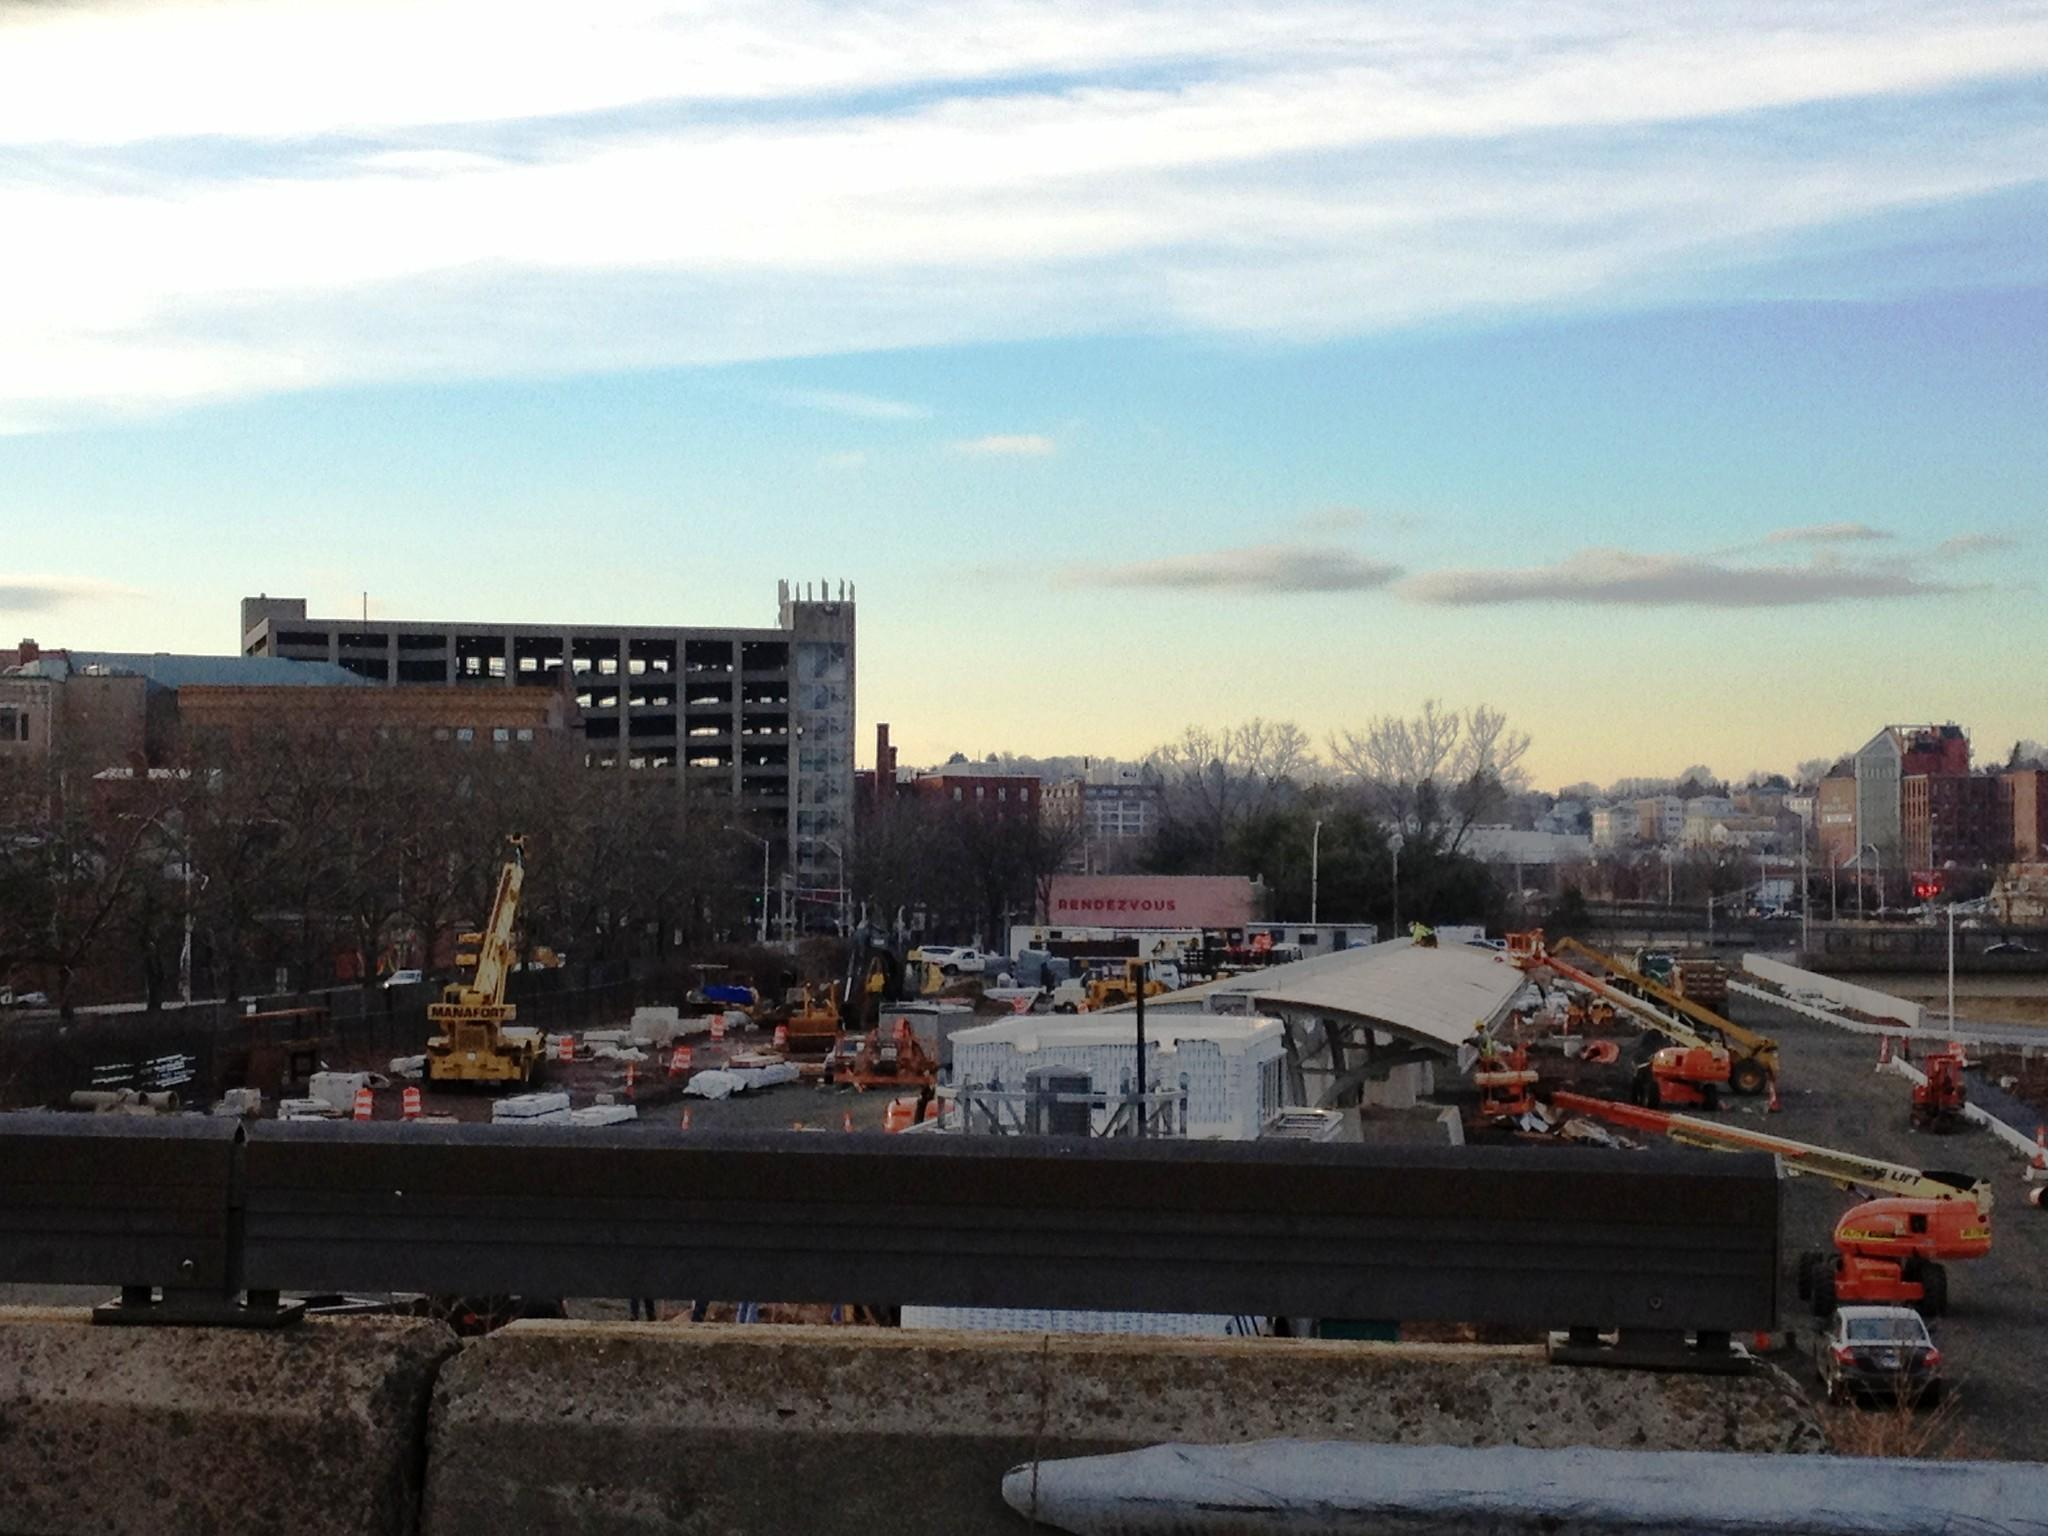 The New Britain busway station under construction in late January.